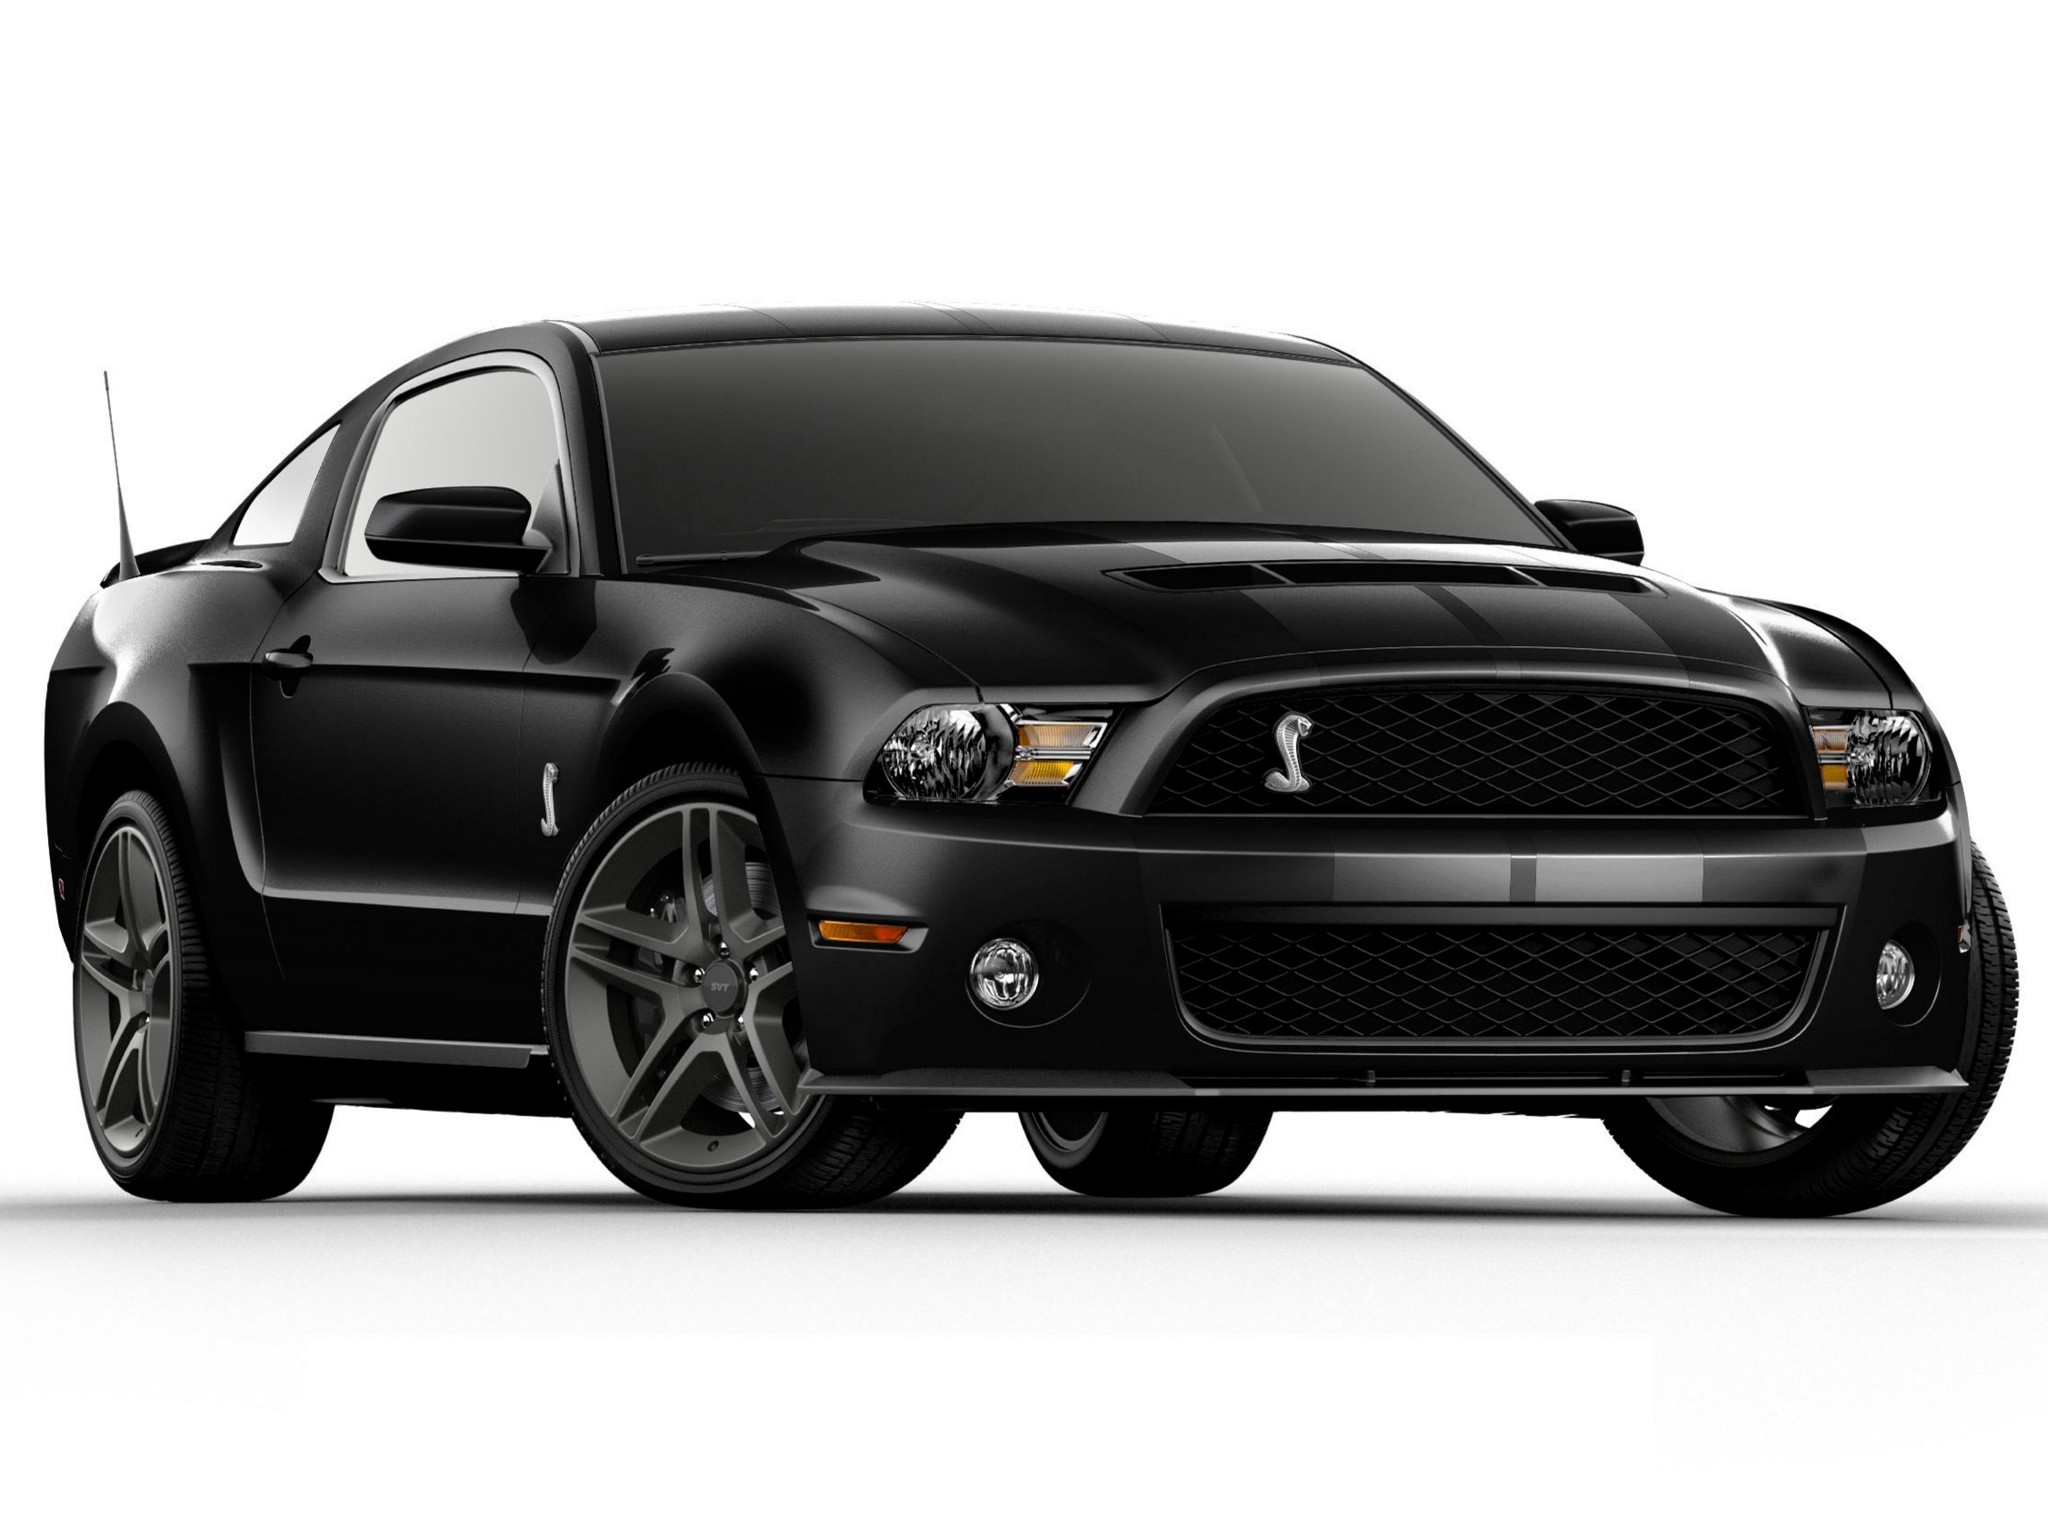 2013 ford mustang gt horsepower autos post. Black Bedroom Furniture Sets. Home Design Ideas